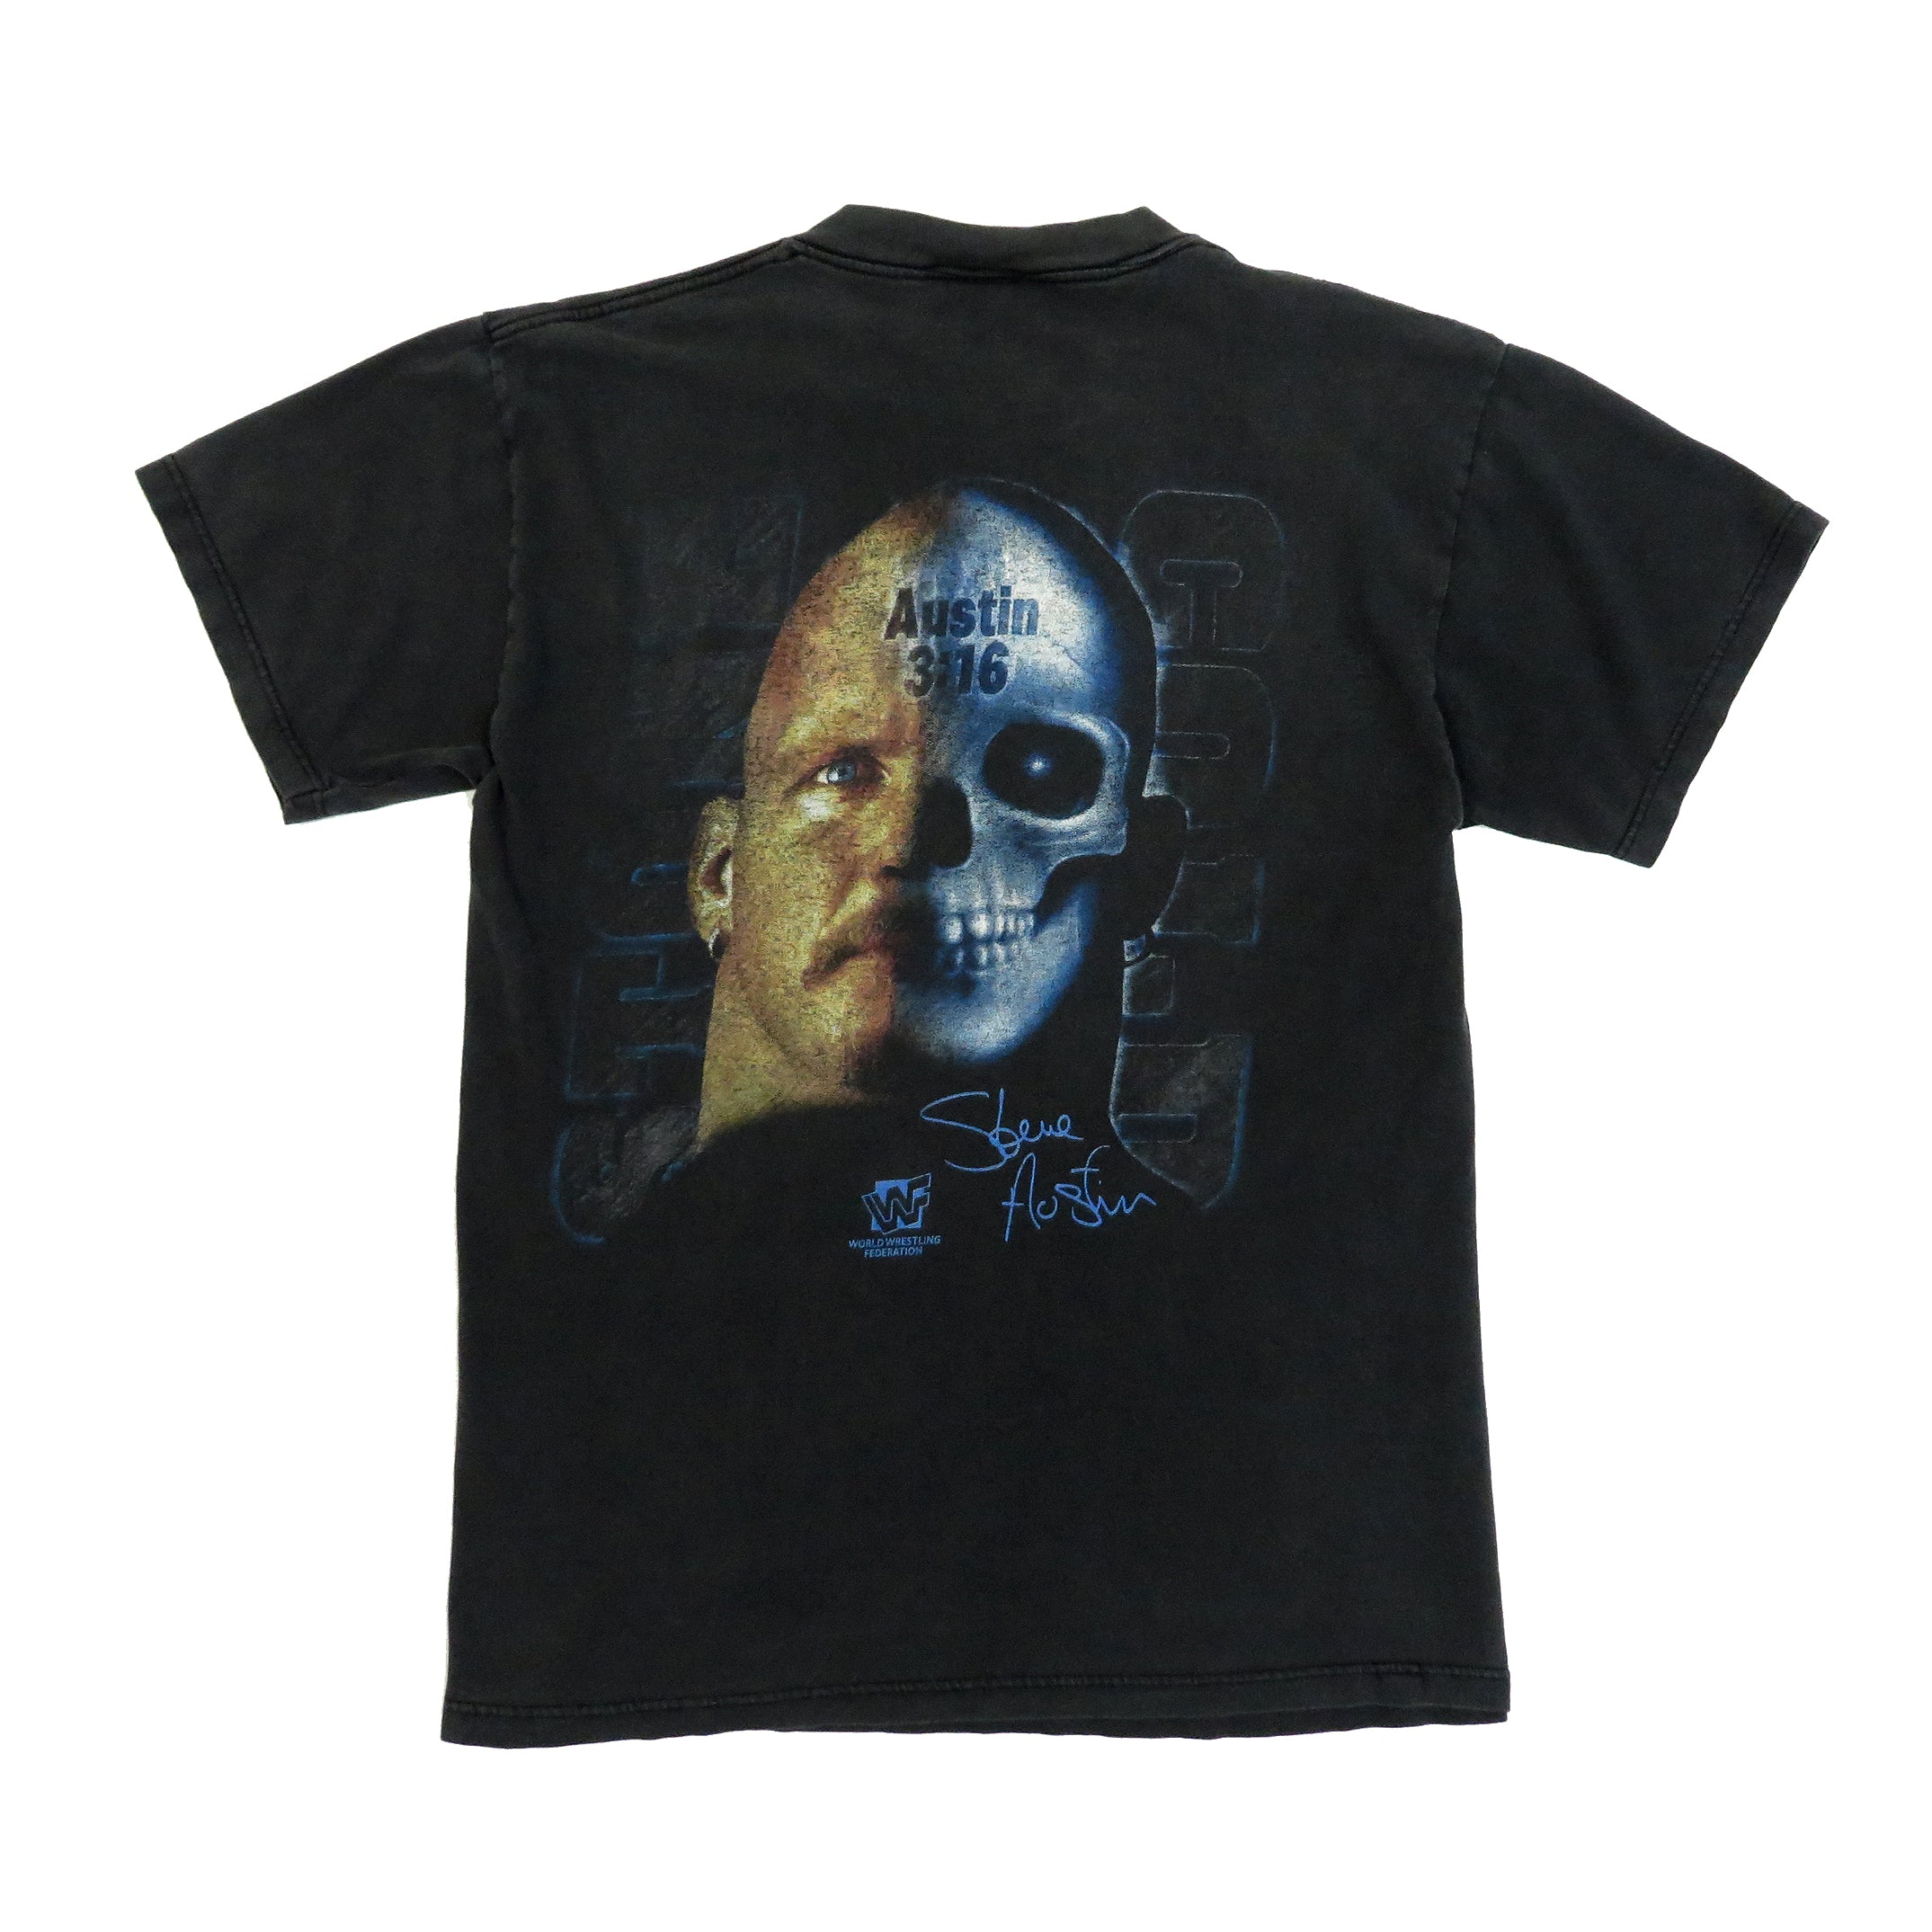 Vintage 1997 Other Side Jackass Stone Cold Steve Austin T-Shirt Sz L